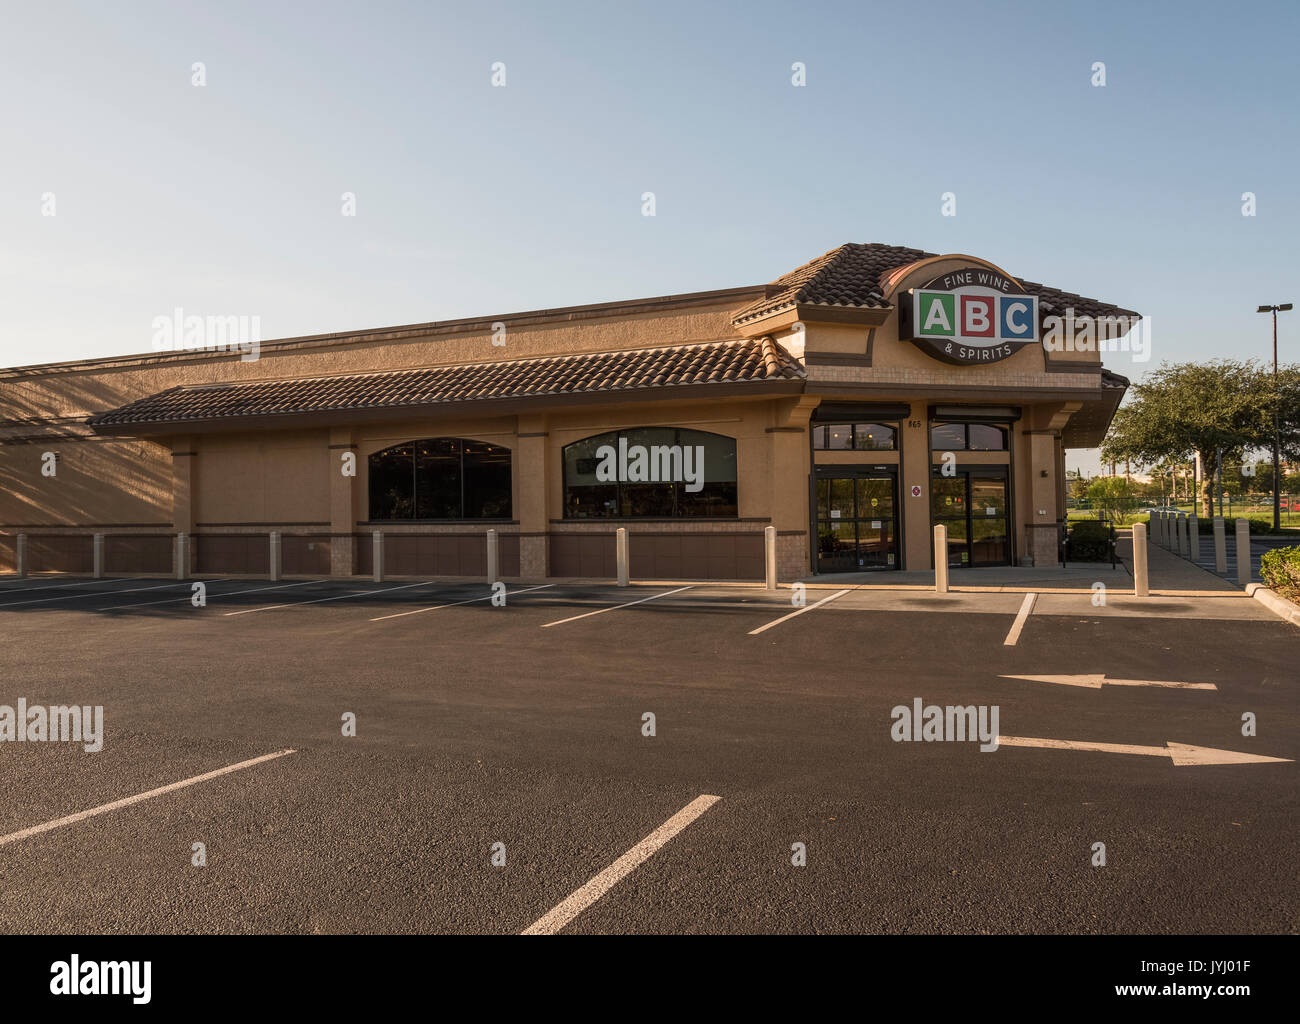 Abc Fine Wine Spirits In Lady Lake Florida Usa Stock Photo Alamy Abc fine wine and spirits job opportunities. https www alamy com abc fine wine spirits in lady lake florida usa image154673835 html